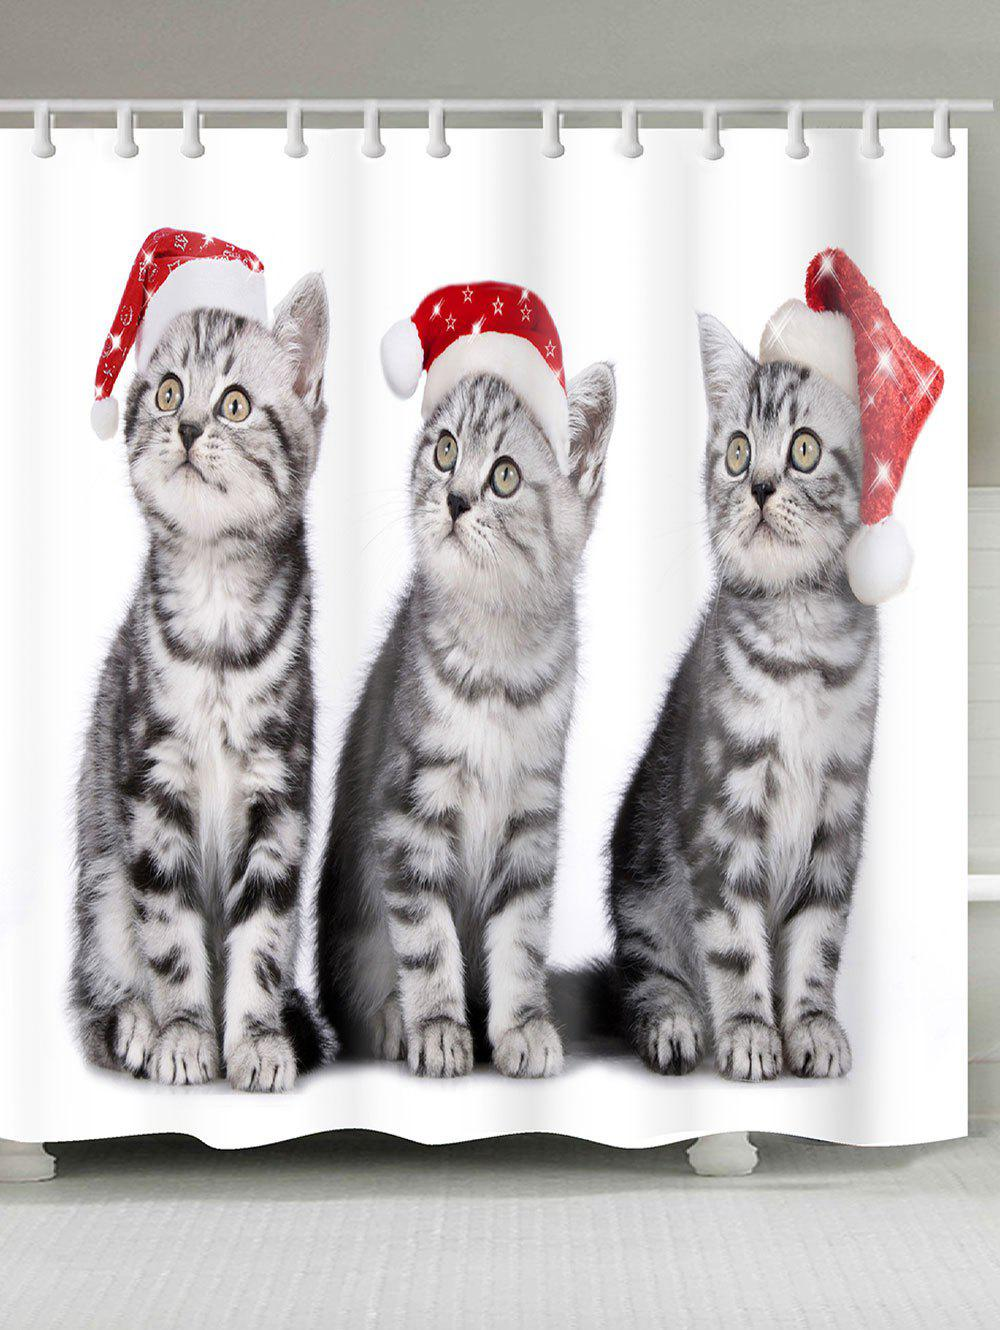 Three Christmas Cats Patterned Bath Shower Curtain merry christmas printed bath waterproof shower curtain